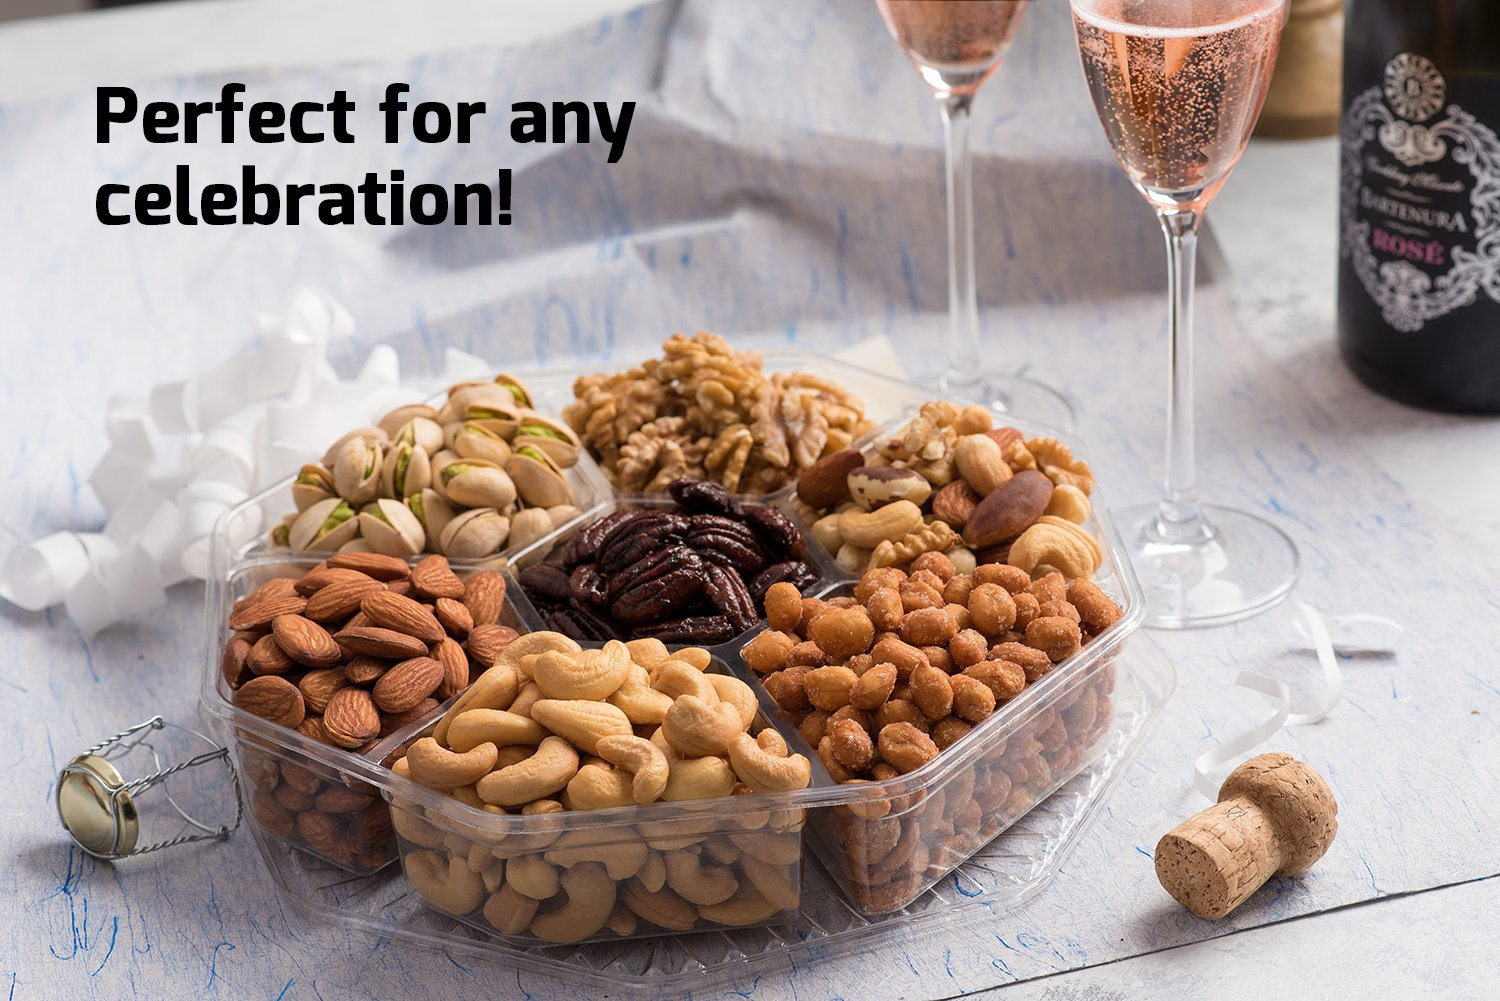 Mother's Day Nuts Gift Basket | Large 7-Sectional Delicious Variety Mixed Nuts Prime Gift | Healthy Fresh Gift Idea For Christmas, Easter, Mothers & Fathers Day, And Birthday by Nut Cravings (Image #5)